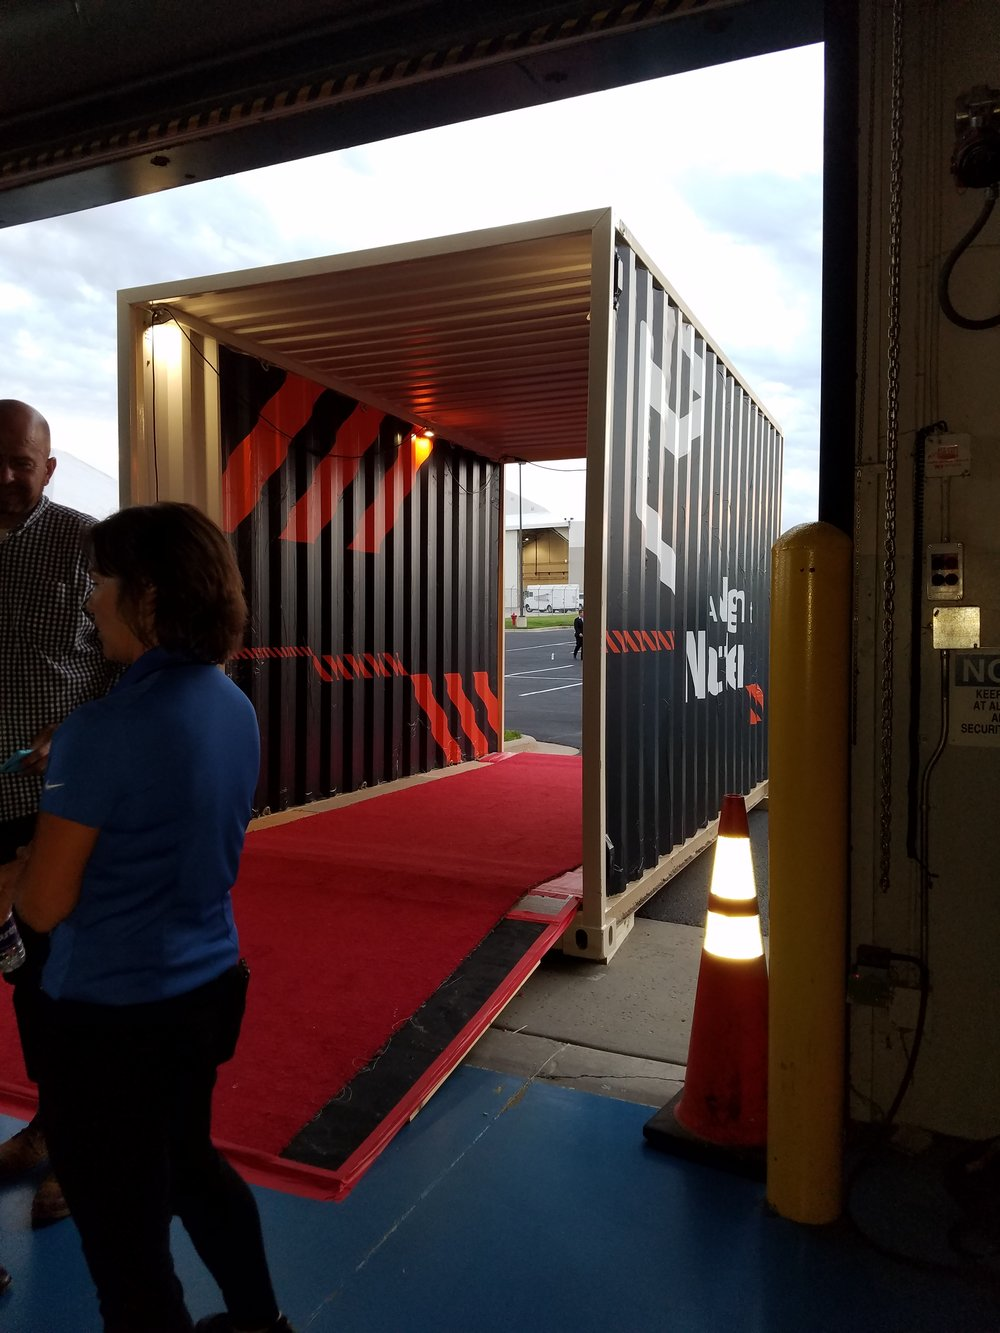 The red carpet brought people through a container